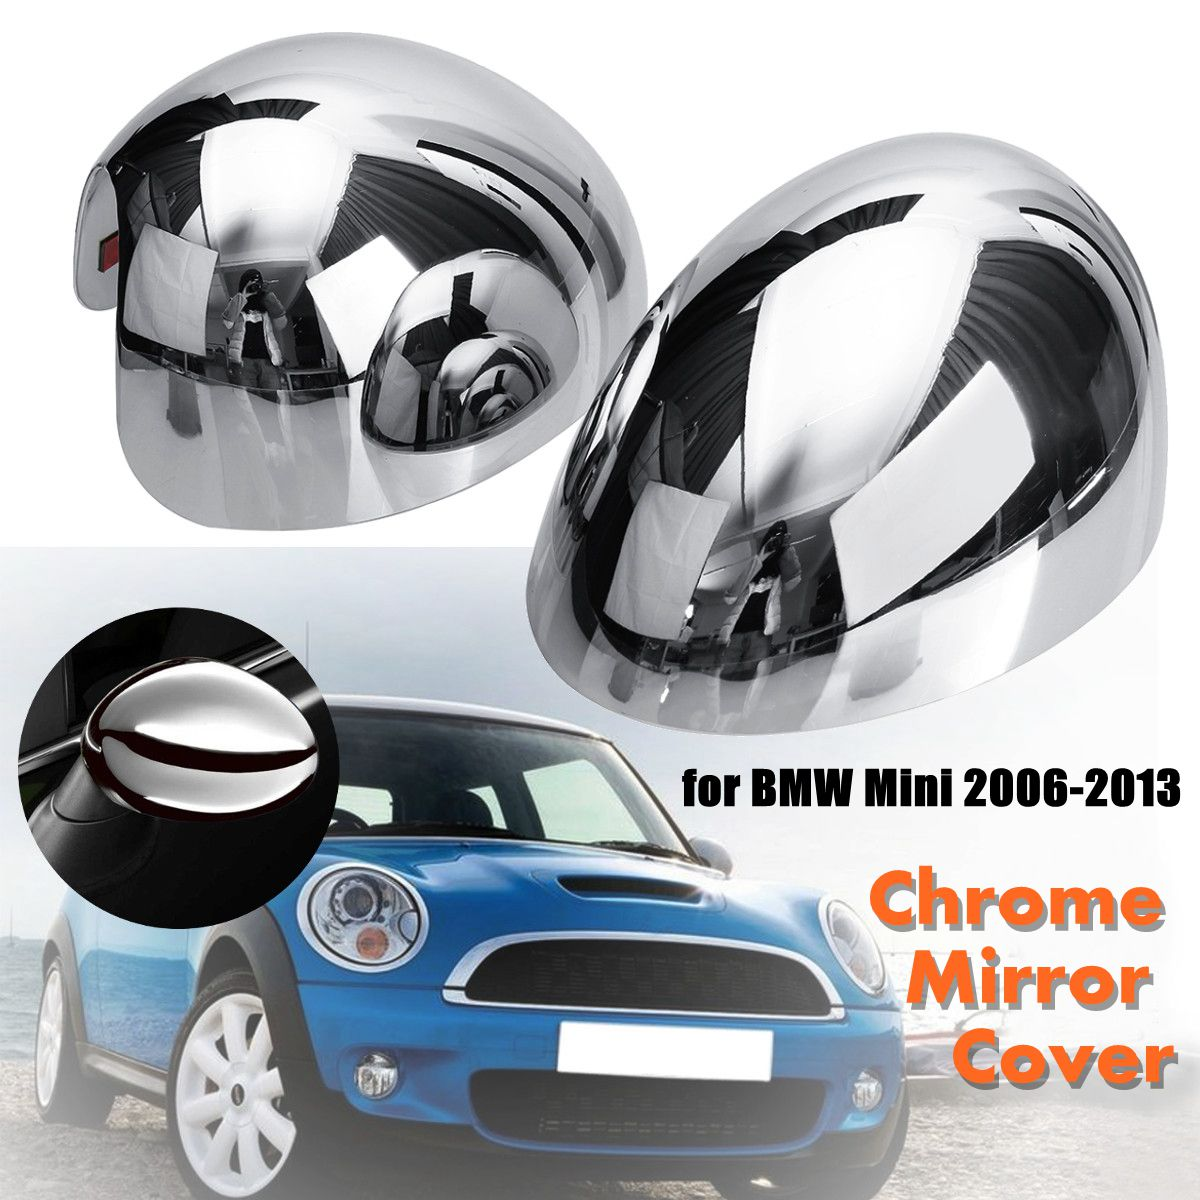 2Pcs ABS Chrome Car Door Wing Mirror Glass Cap Covers Plastic for BMW for Mini Cooper 2006-2013 carking diy abs steering wheel covers stickers for bmw mini cooper red blue multi color